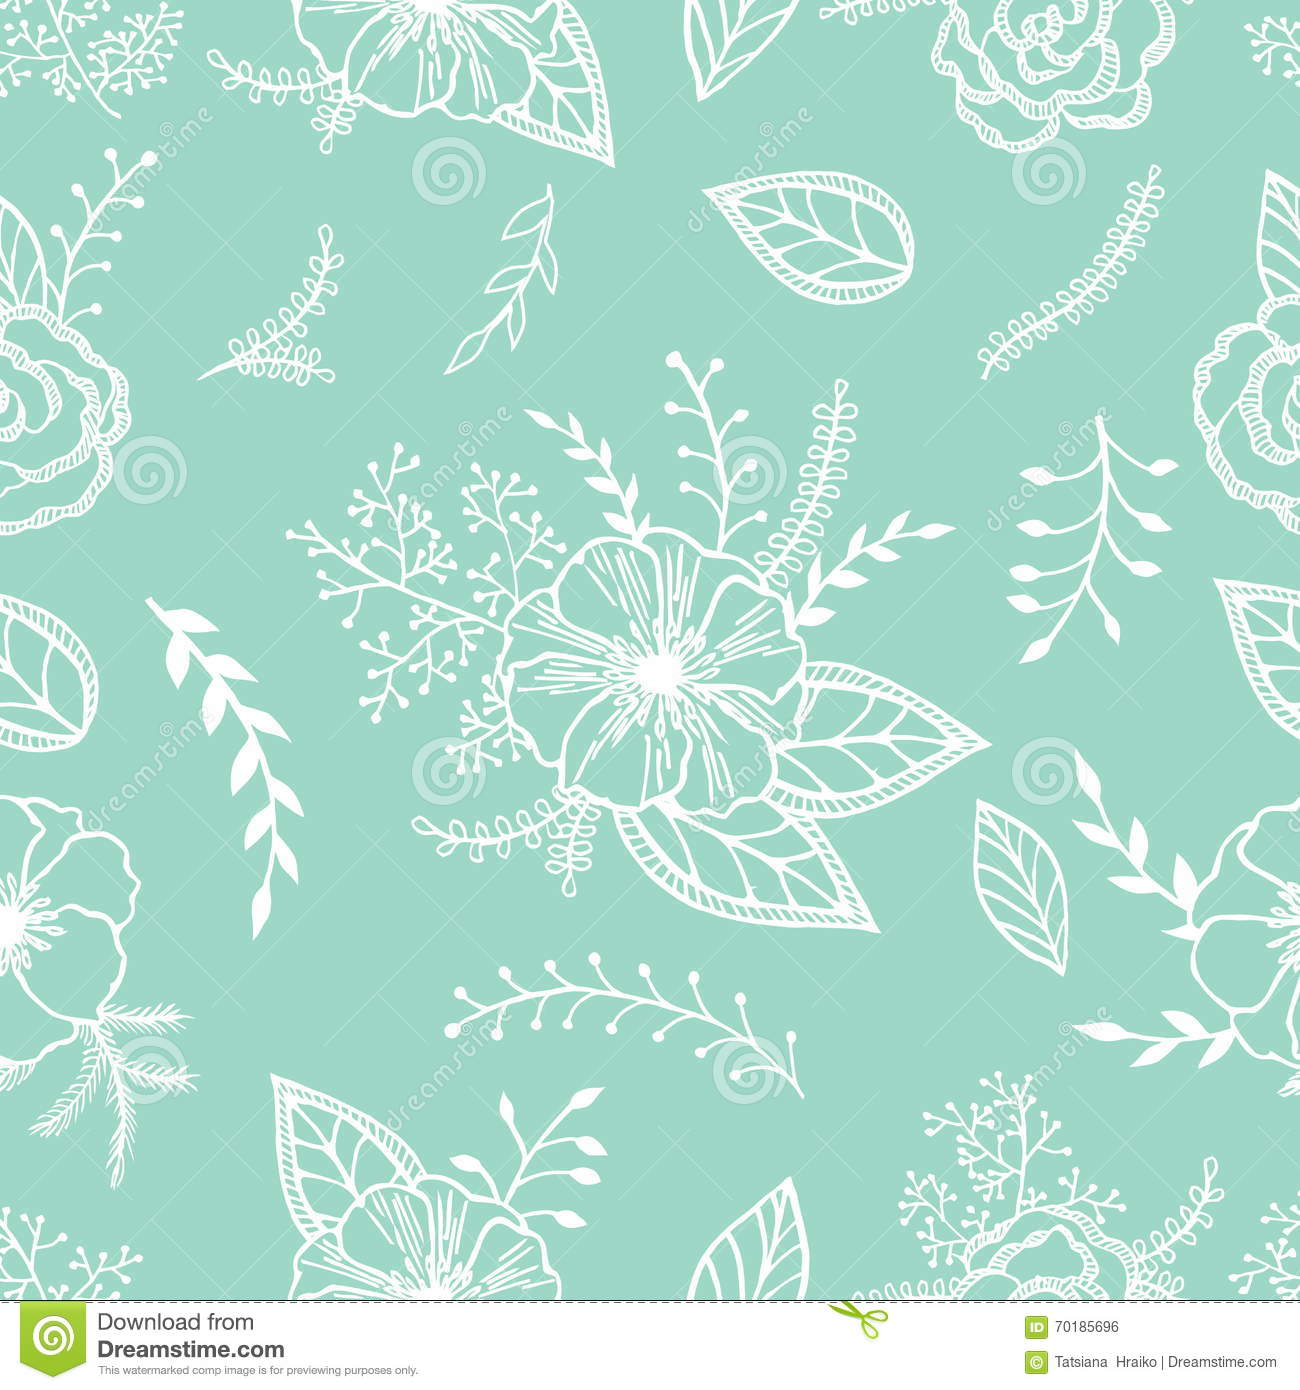 Mint And White Seamless Pattern With Anemones Roses And Leaves On